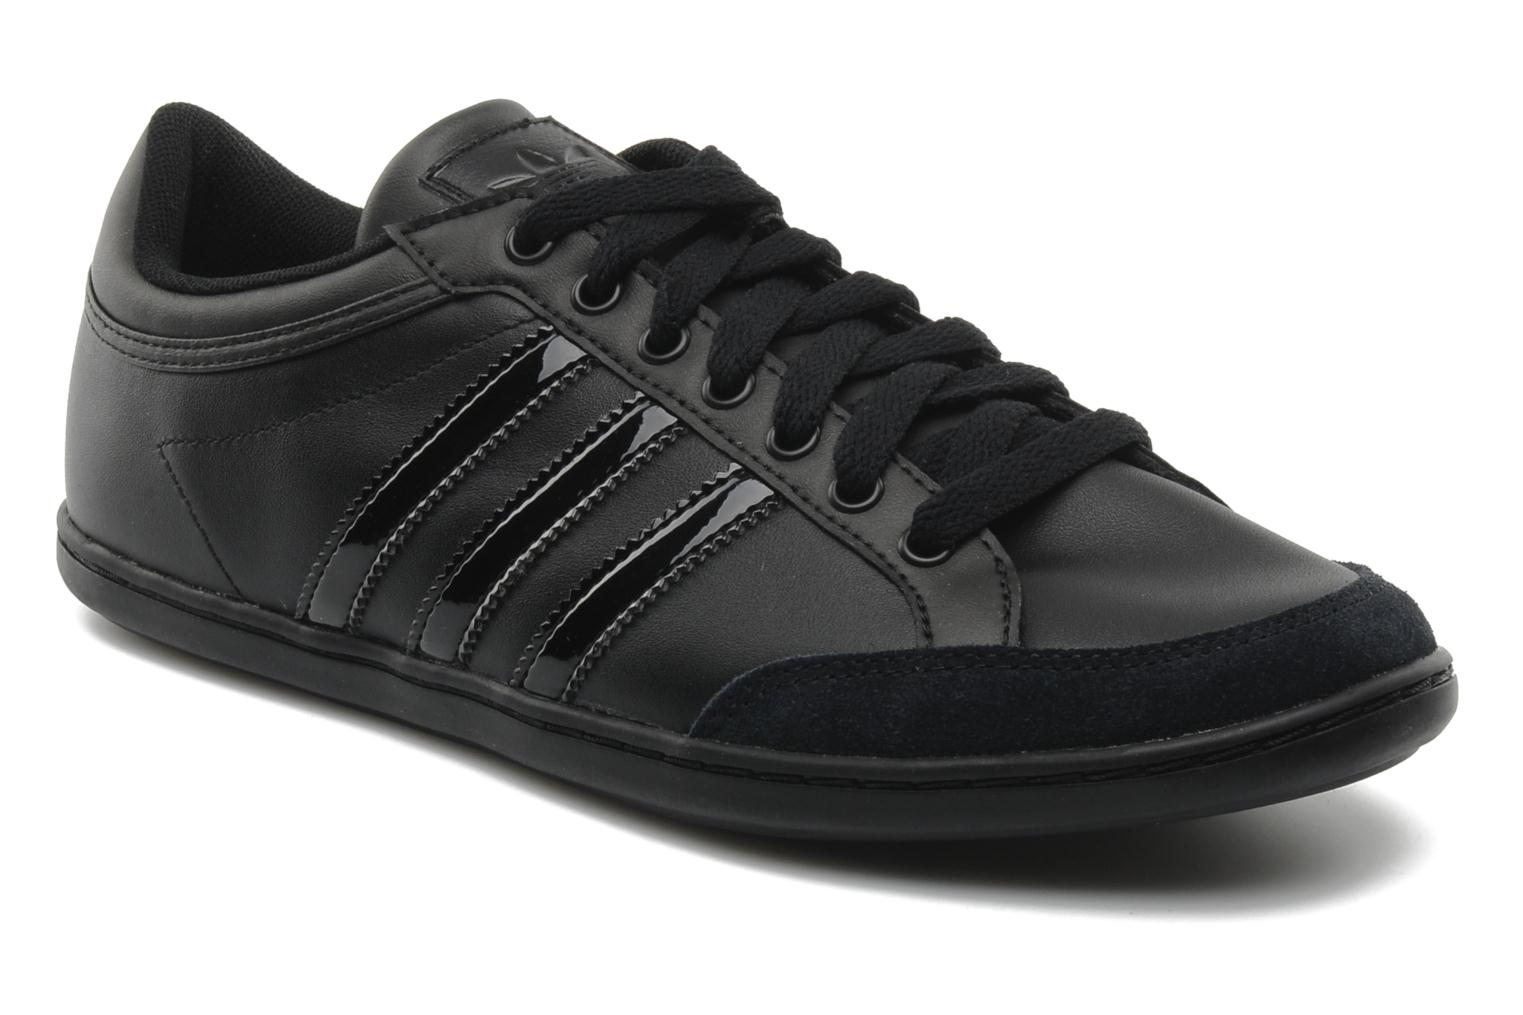 Baskets Adidas Originals Plimcana low Noir vue détail/paire